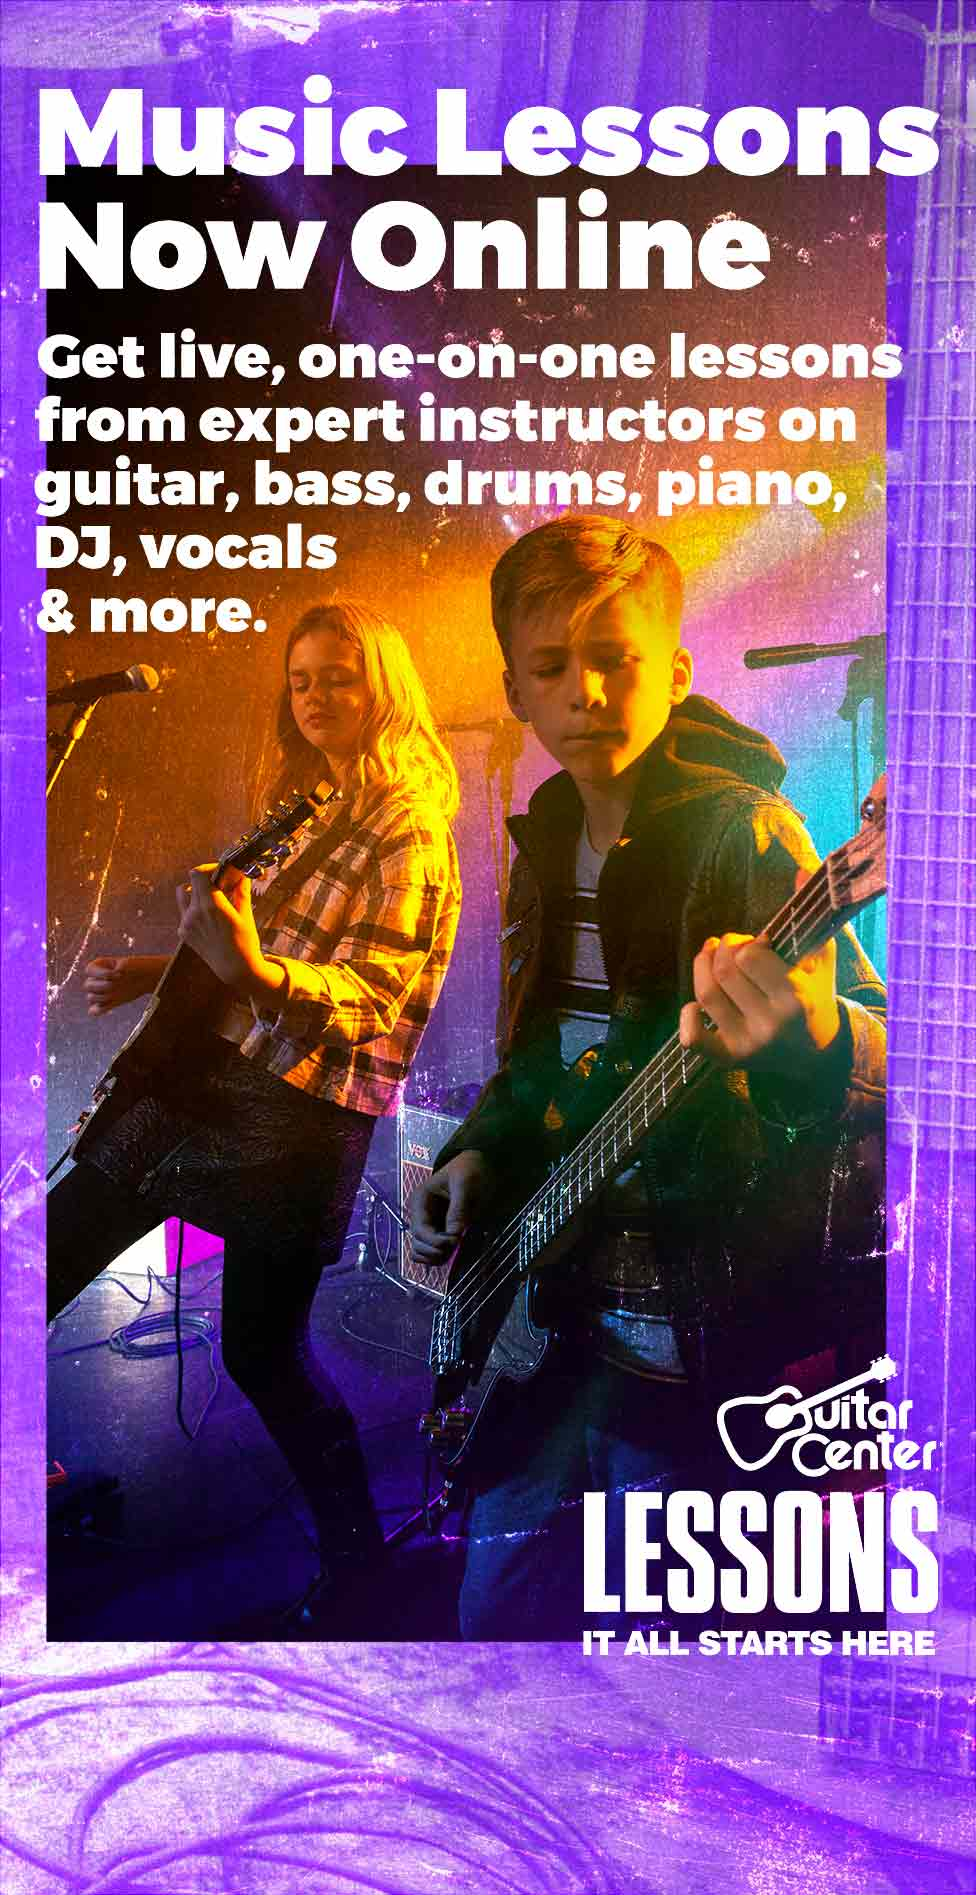 Music Lessons Now Online. Get live, one on one lessons from expert instructors on guitar, bass, drums, piano, DJ, vocals and more. <h1>Guitar Center Lessons. It all starts here.</h1>